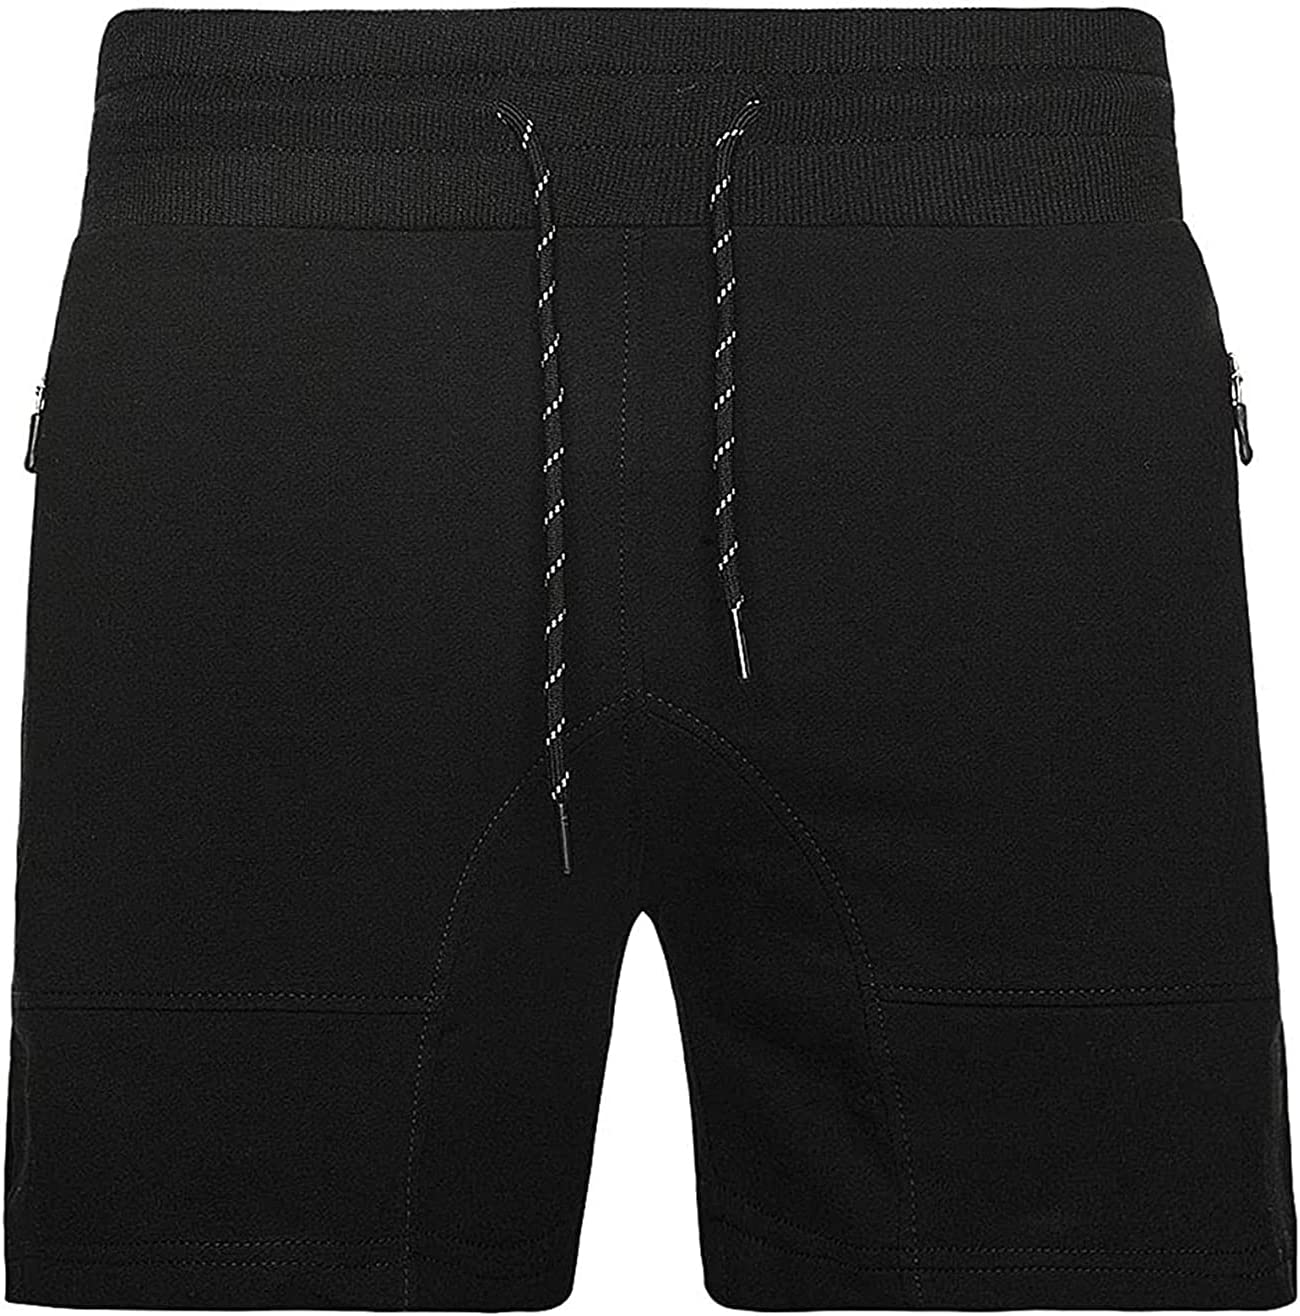 Men's Drawstring Casual New New popularity life Baggy Shorts Athletic Elastic Gym Waist